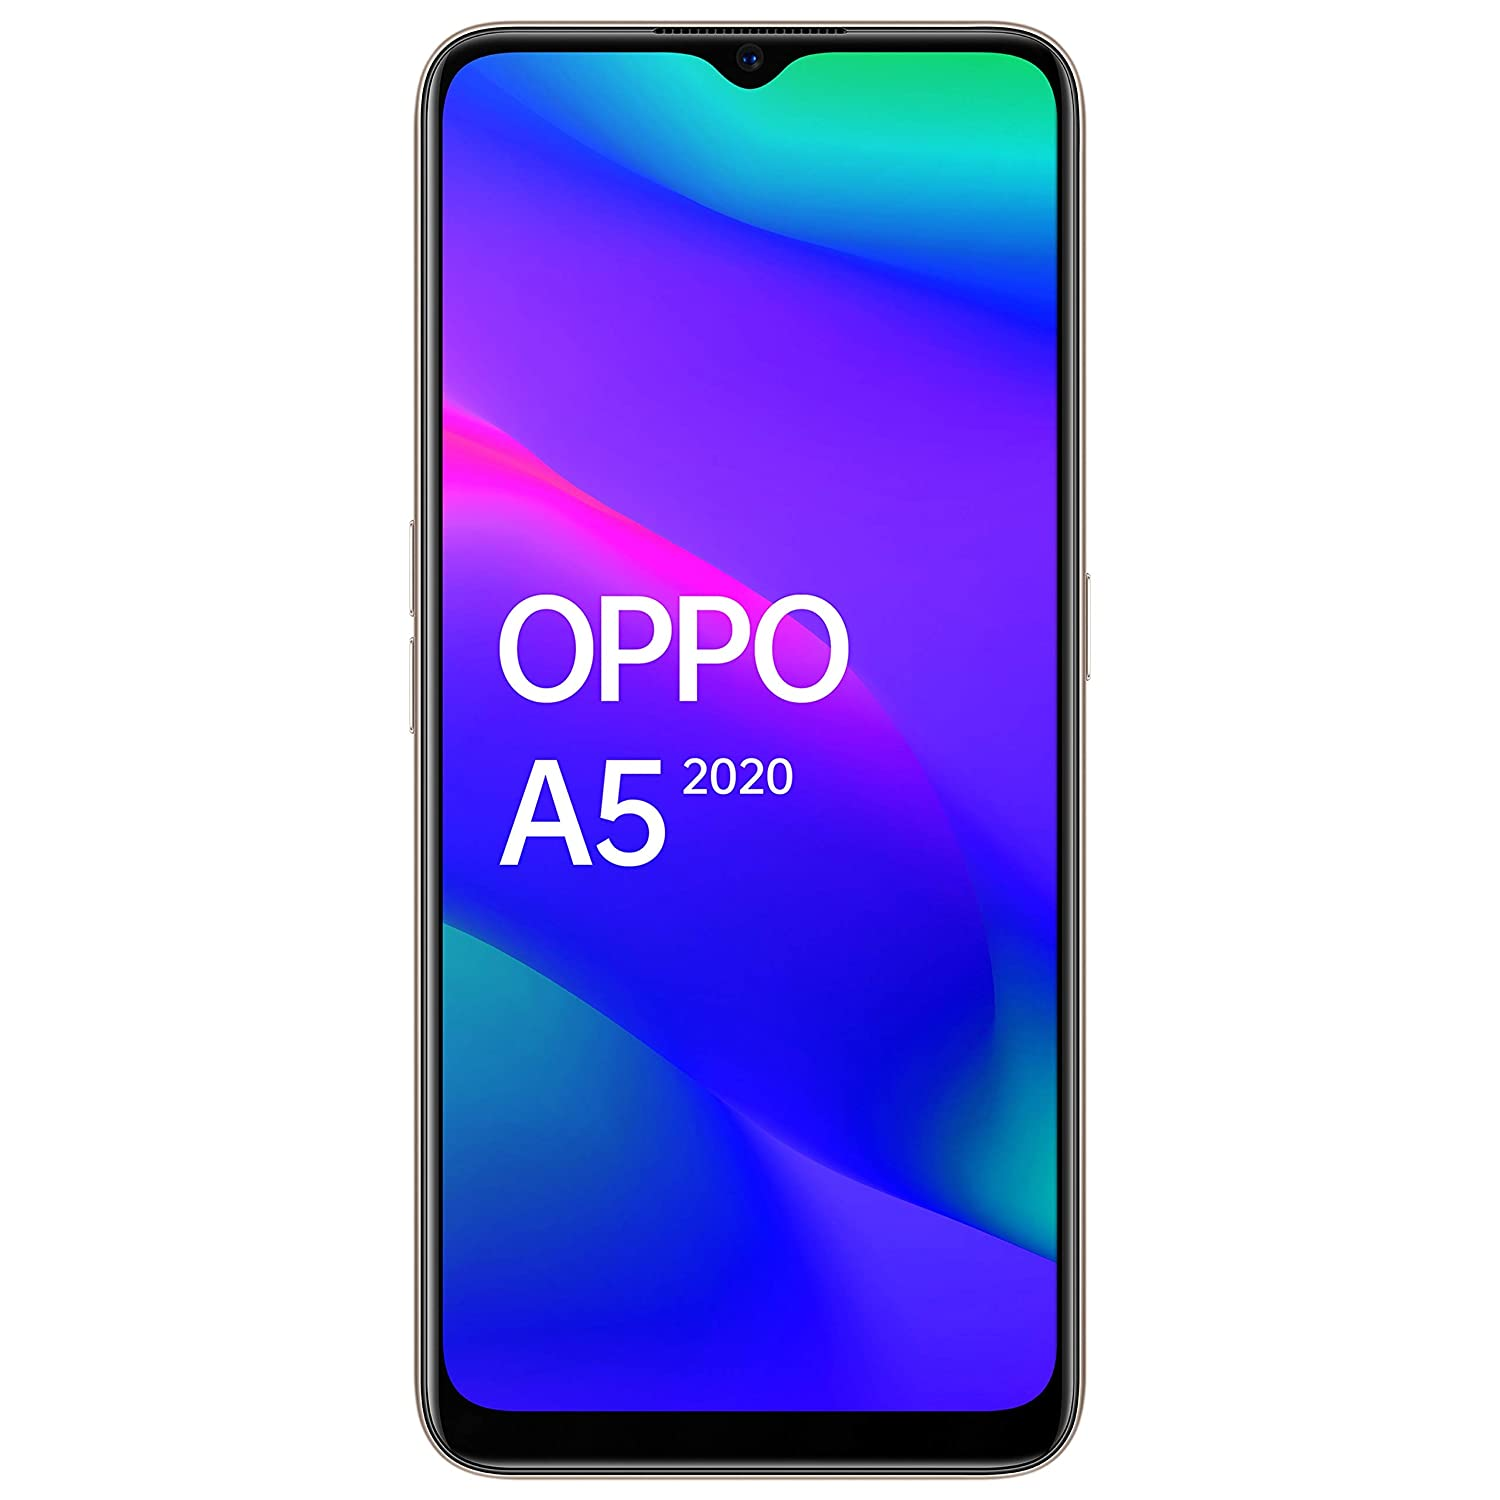 OPPO A5 2020 (Dazzling White, 4GB RAM, 64GB Storage) with No Cost EMI/Additional Exchange Offers by Oppo